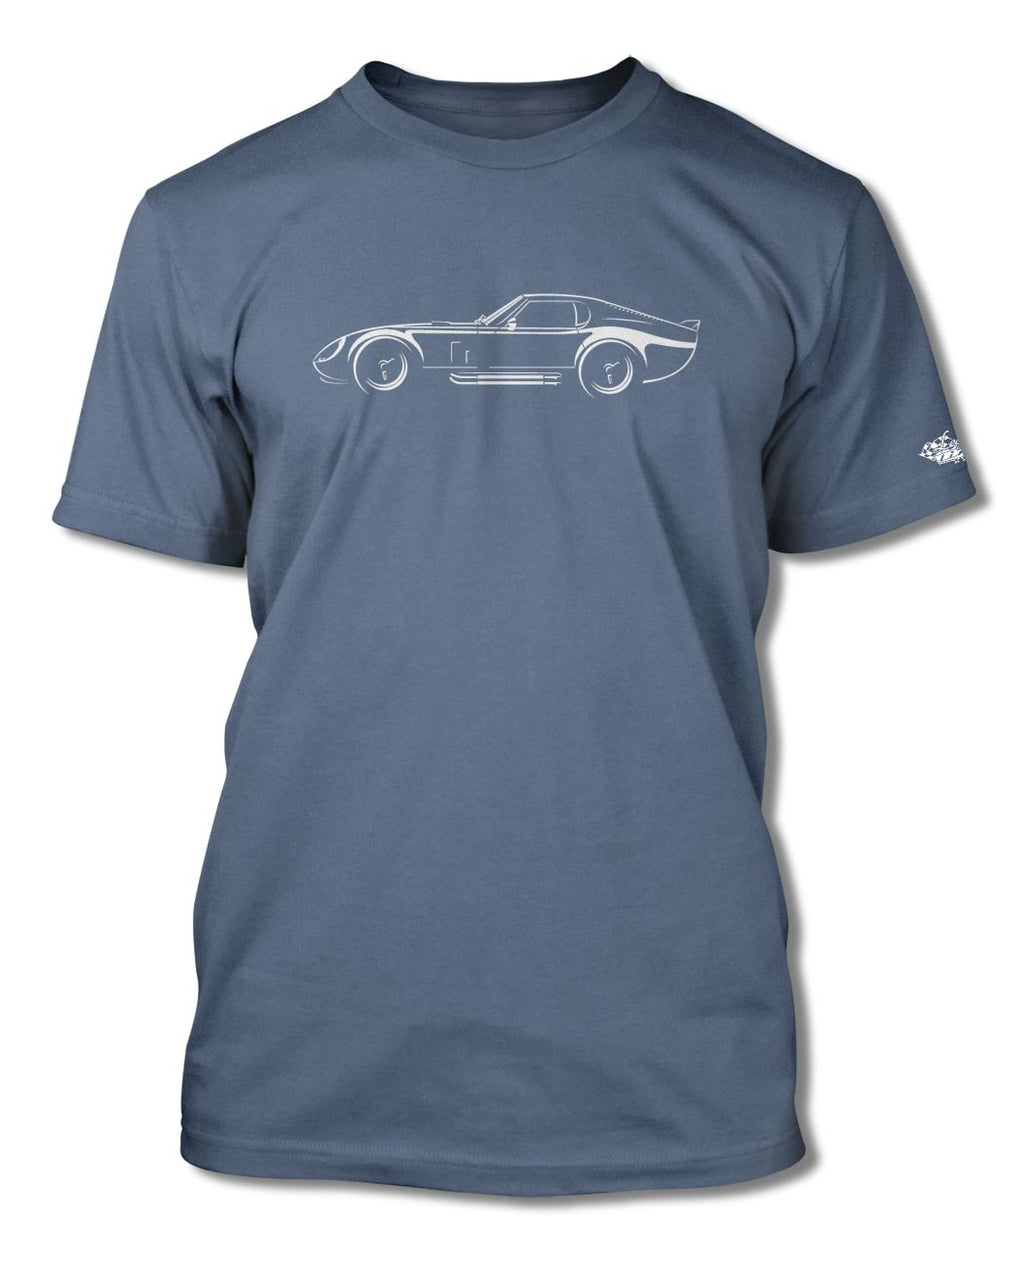 1964 Daytona Coupe Art of Light T-Shirt - Men